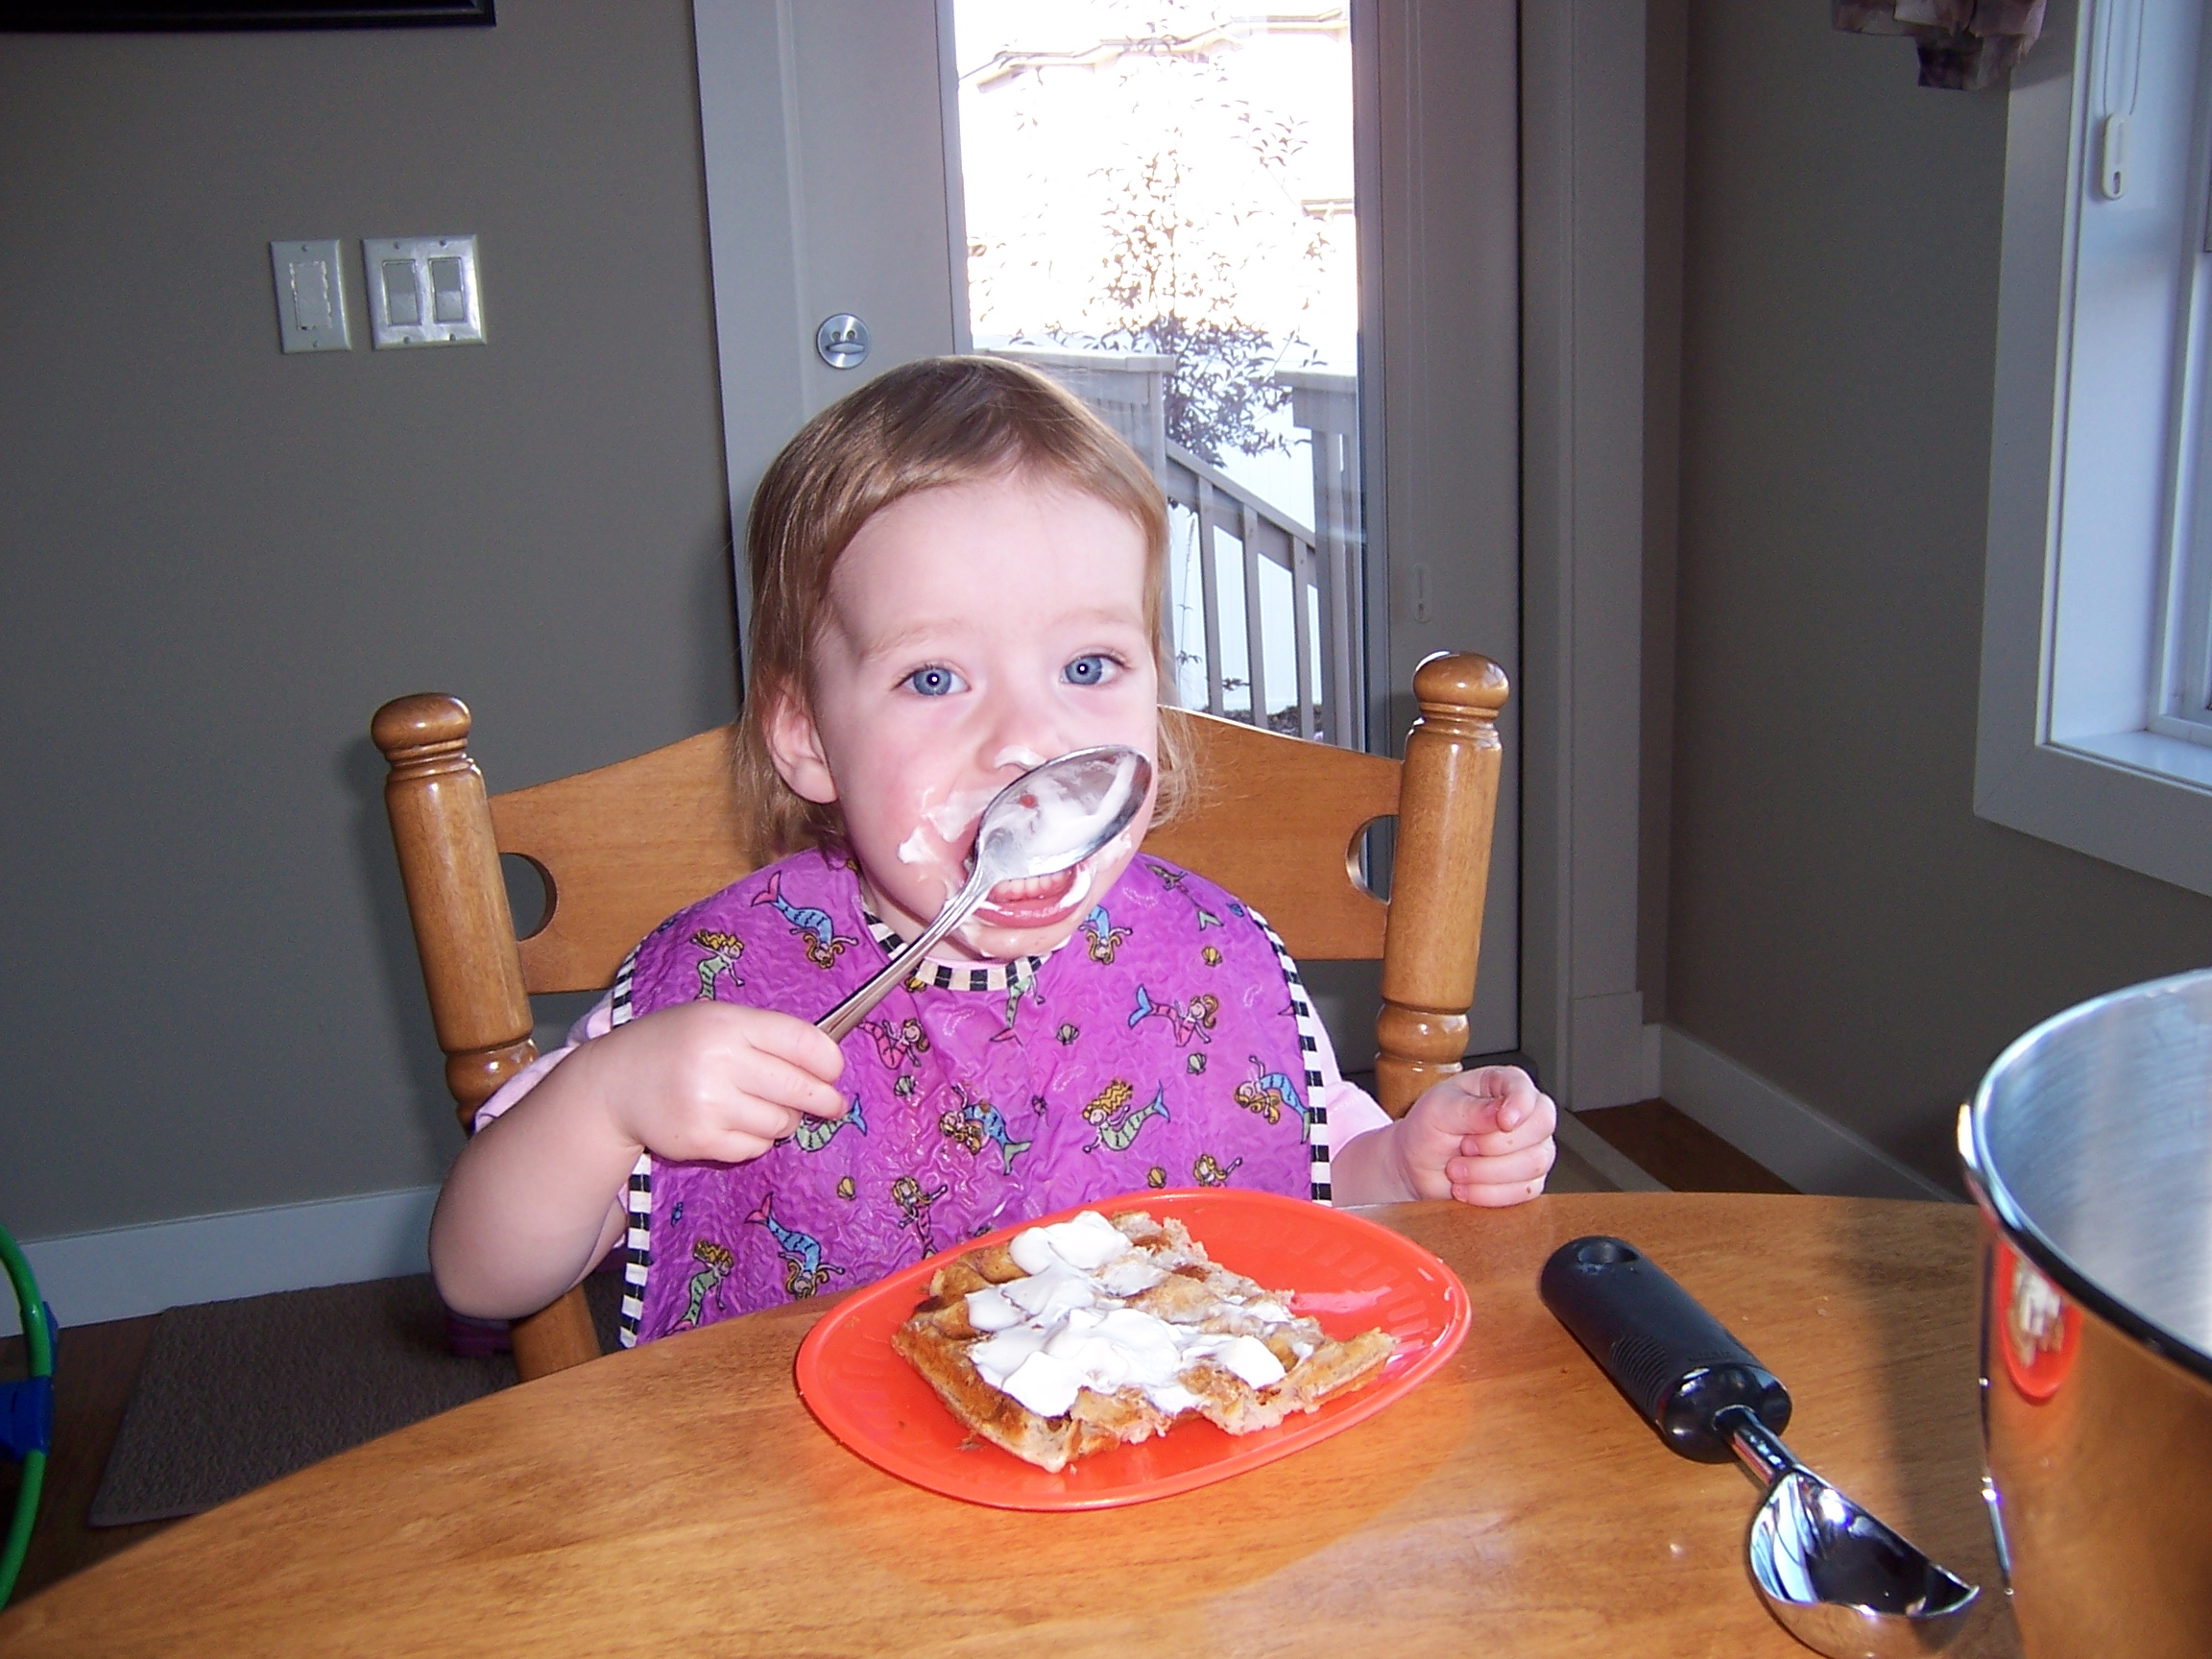 A pic of my daughter who had severe milk and egg allergies, eating her favorite egg and milk free waffles with coconut whip.